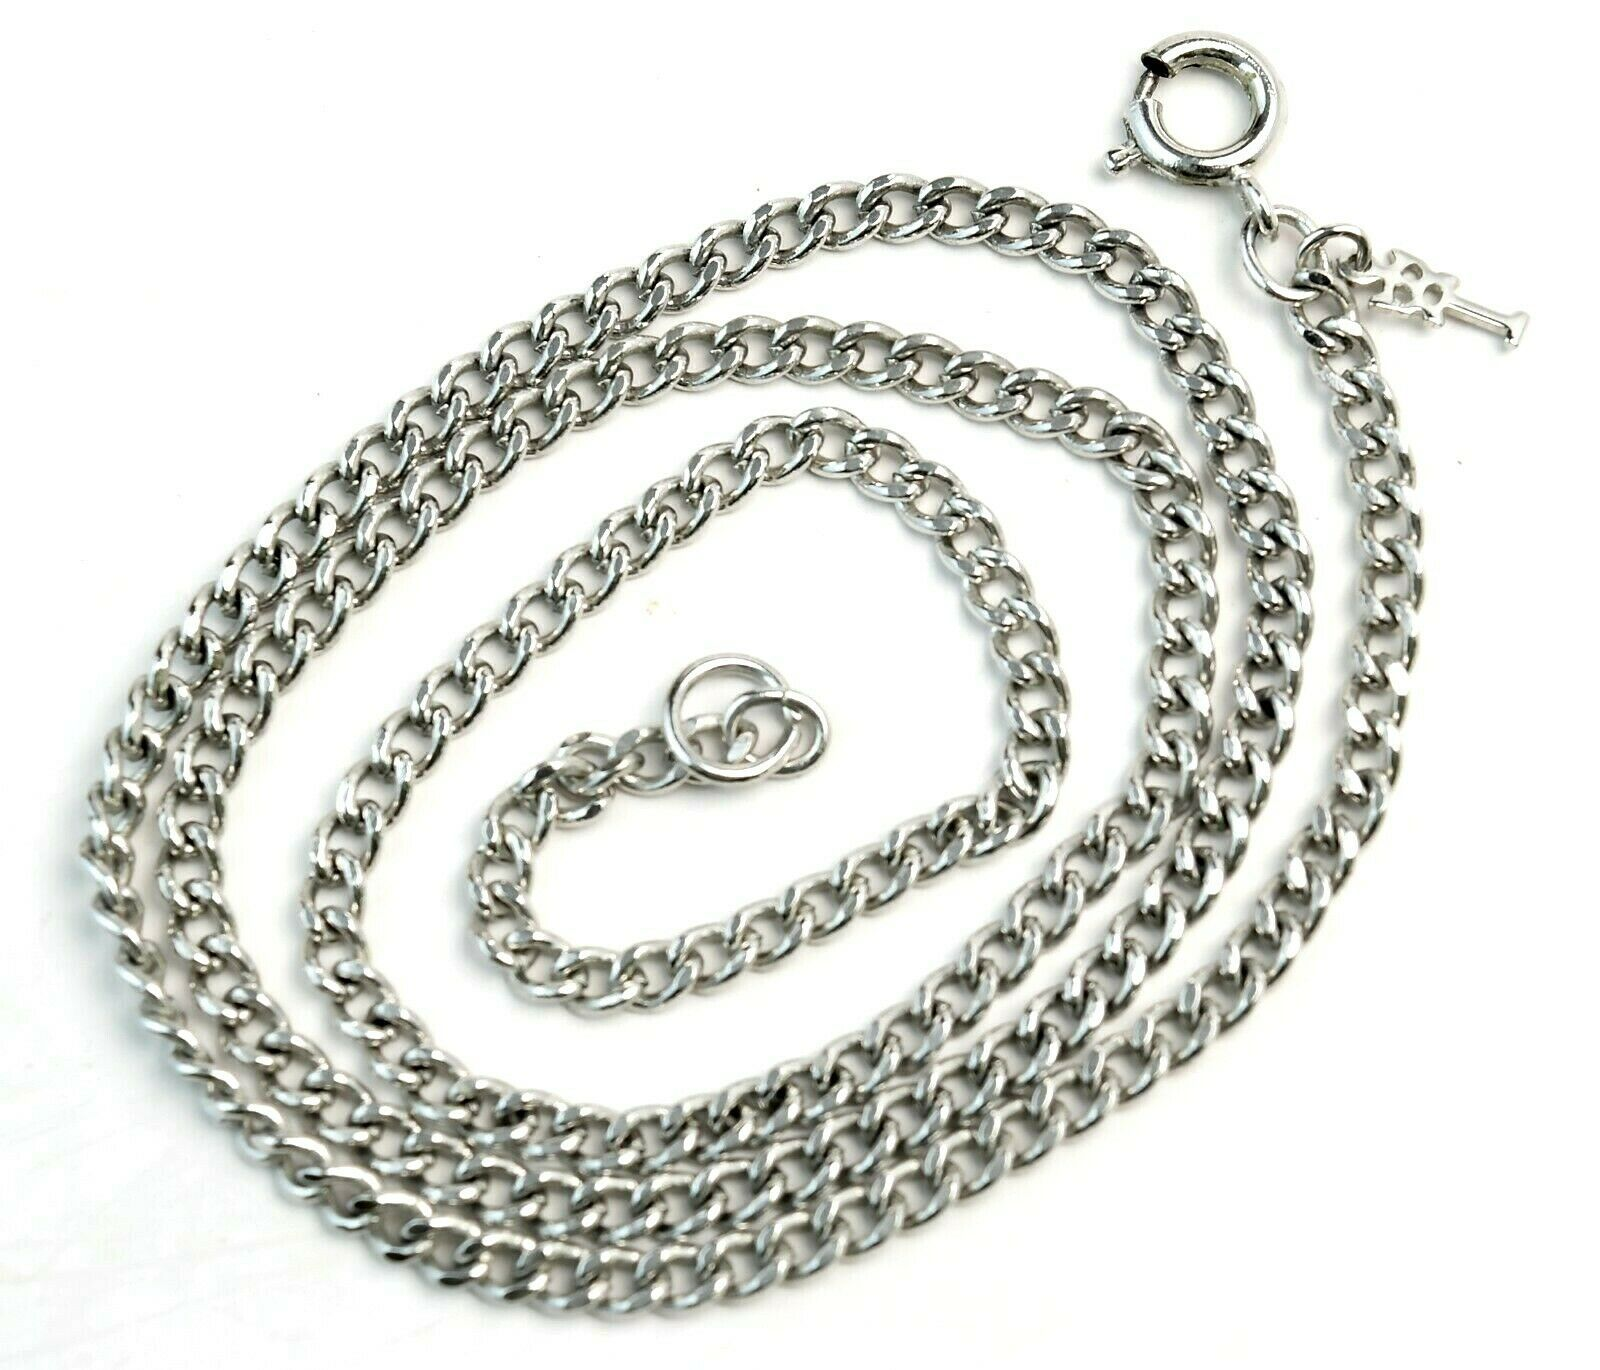 Vintage 60's Crown Trifari Silver Tone Curb Chain Necklace 18 inch - $25.74